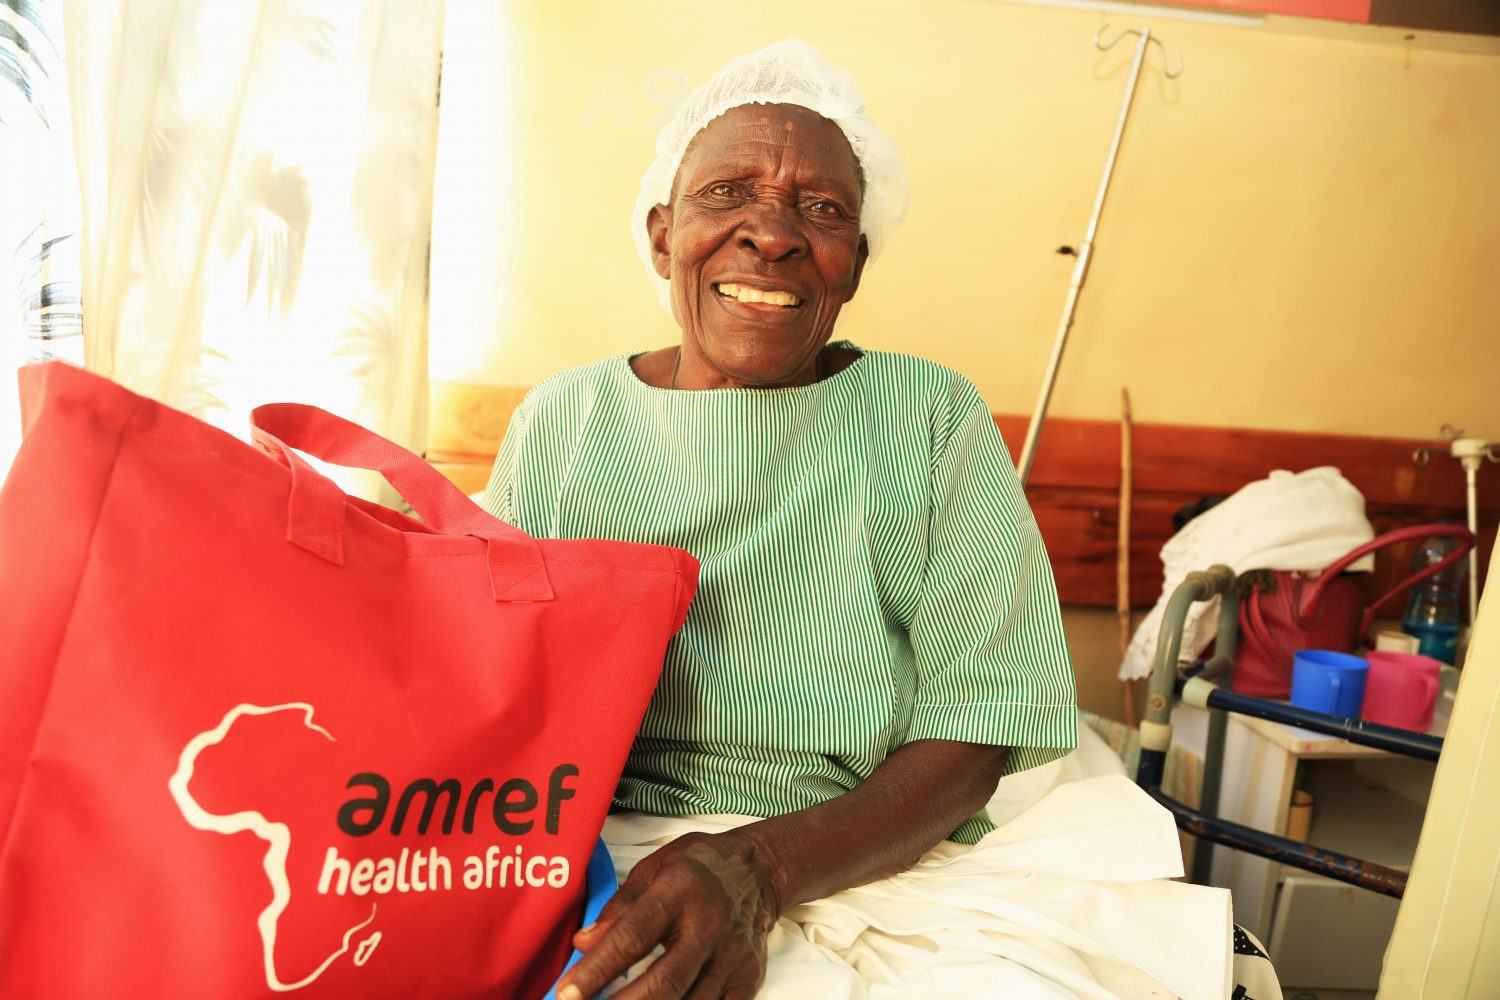 Paskalia happy after receiving dignity pack from Amref